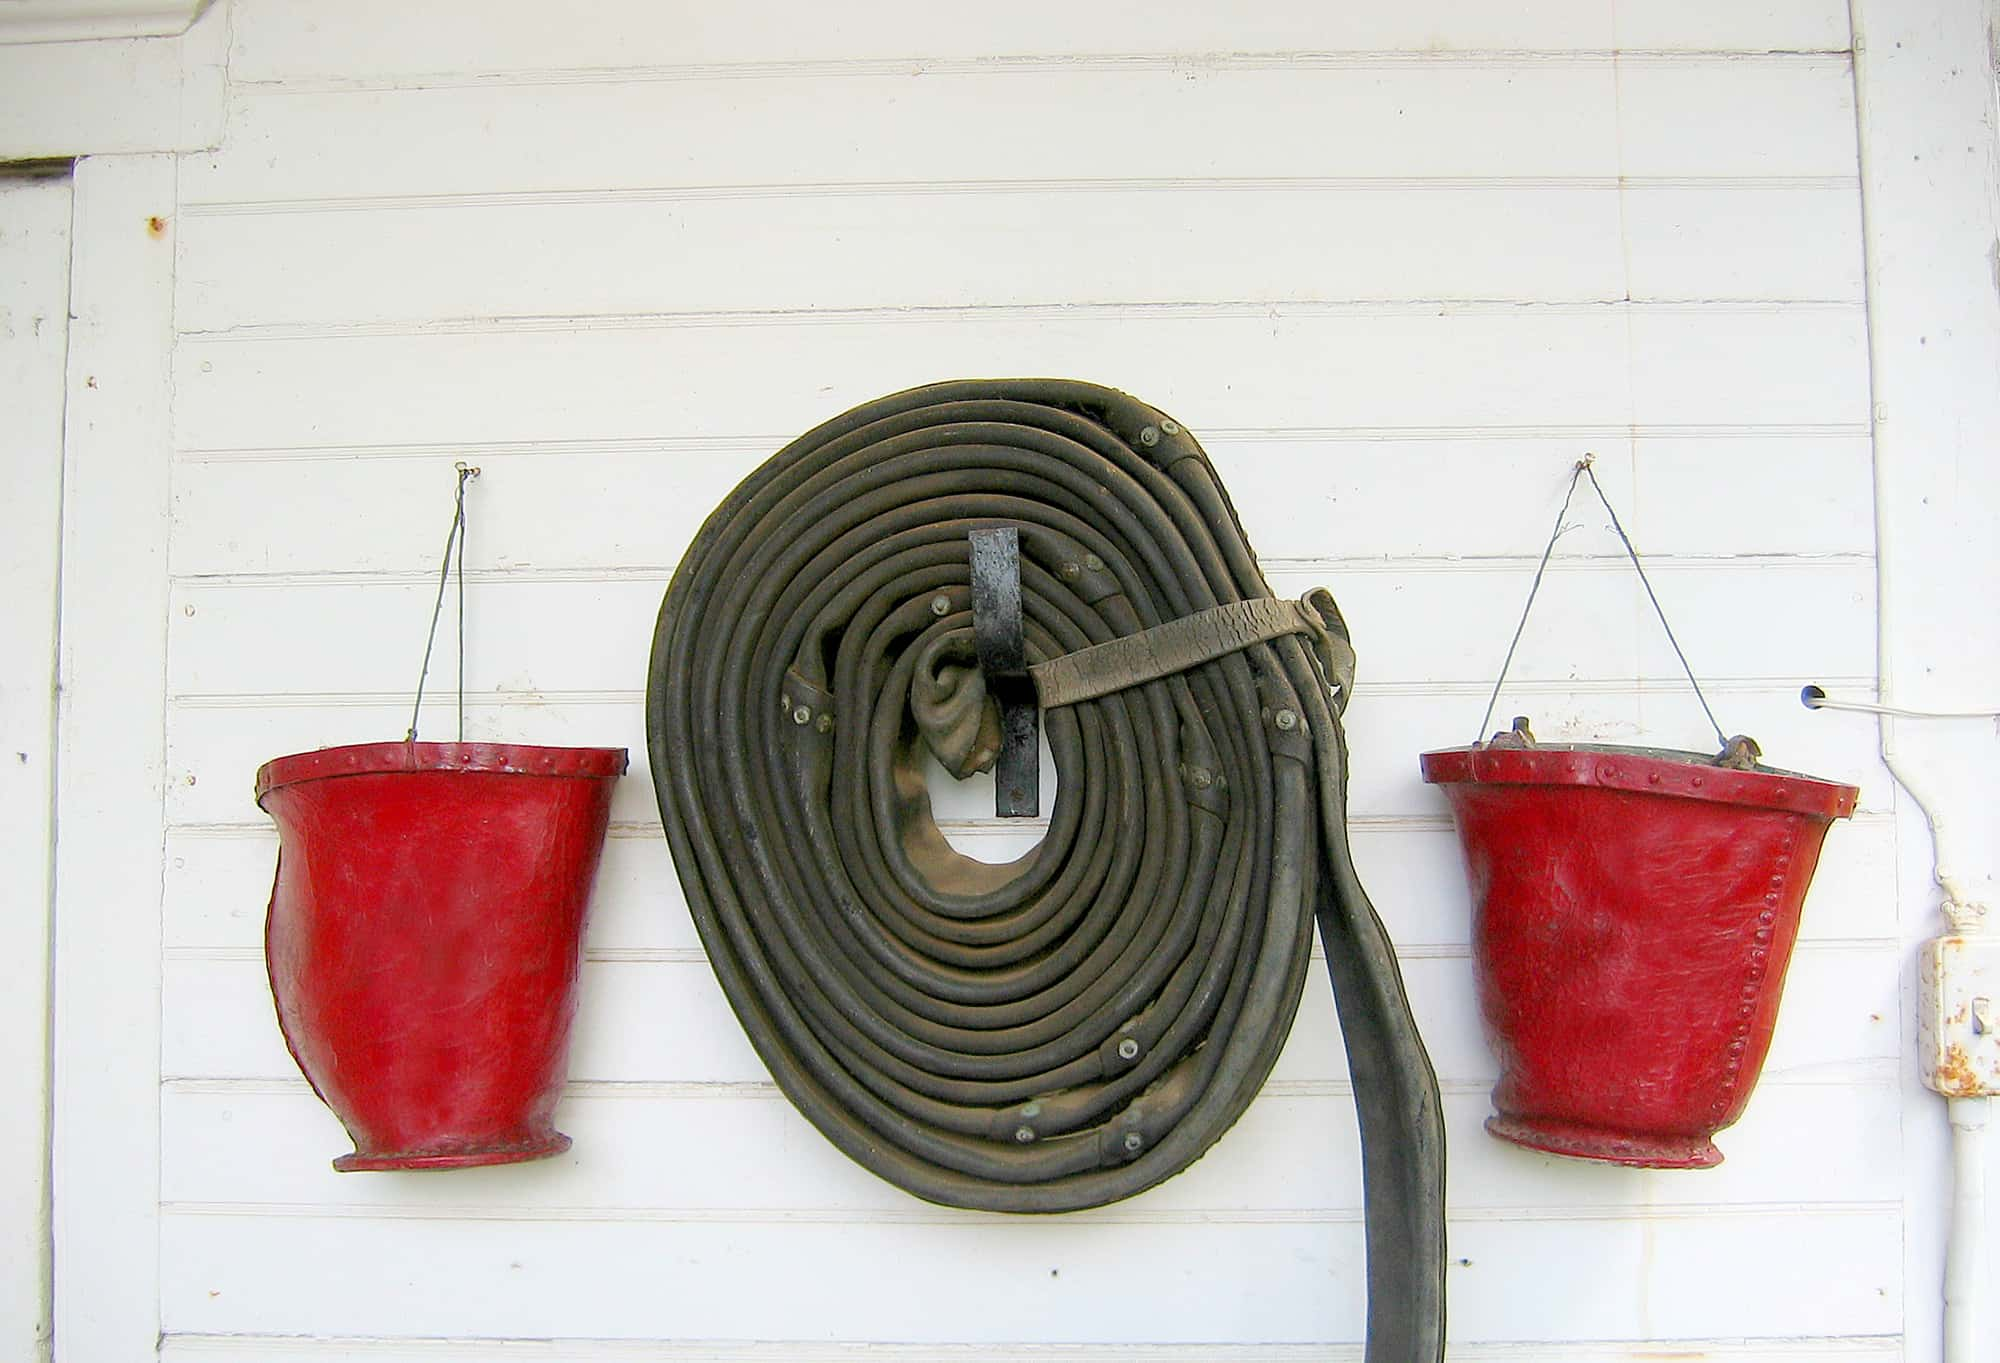 Leather was a solution for hoses and plumbing